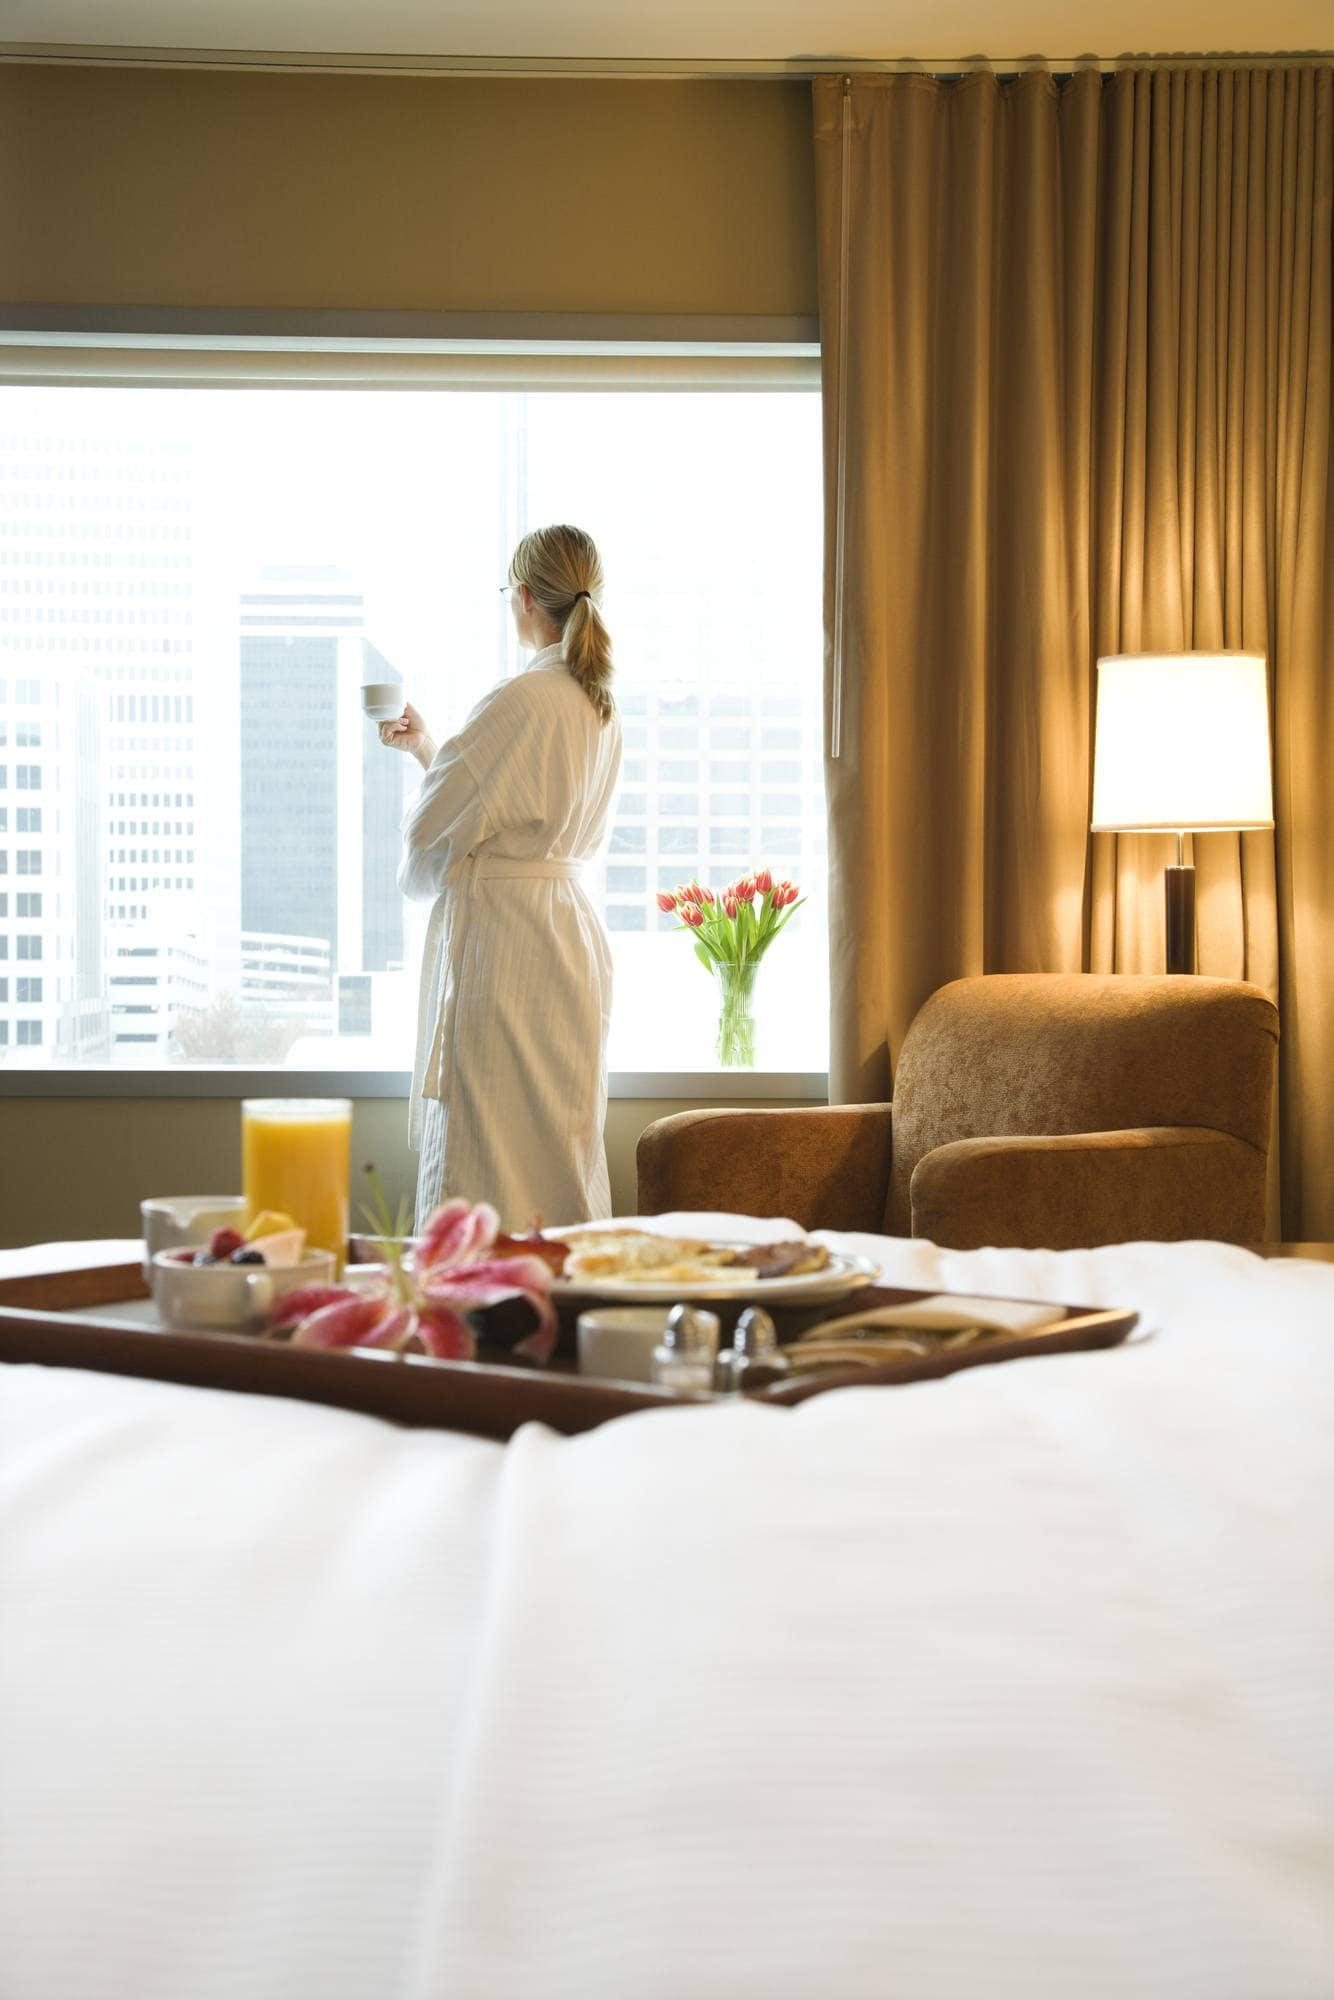 A hotel stay should be relaxing, not stressful